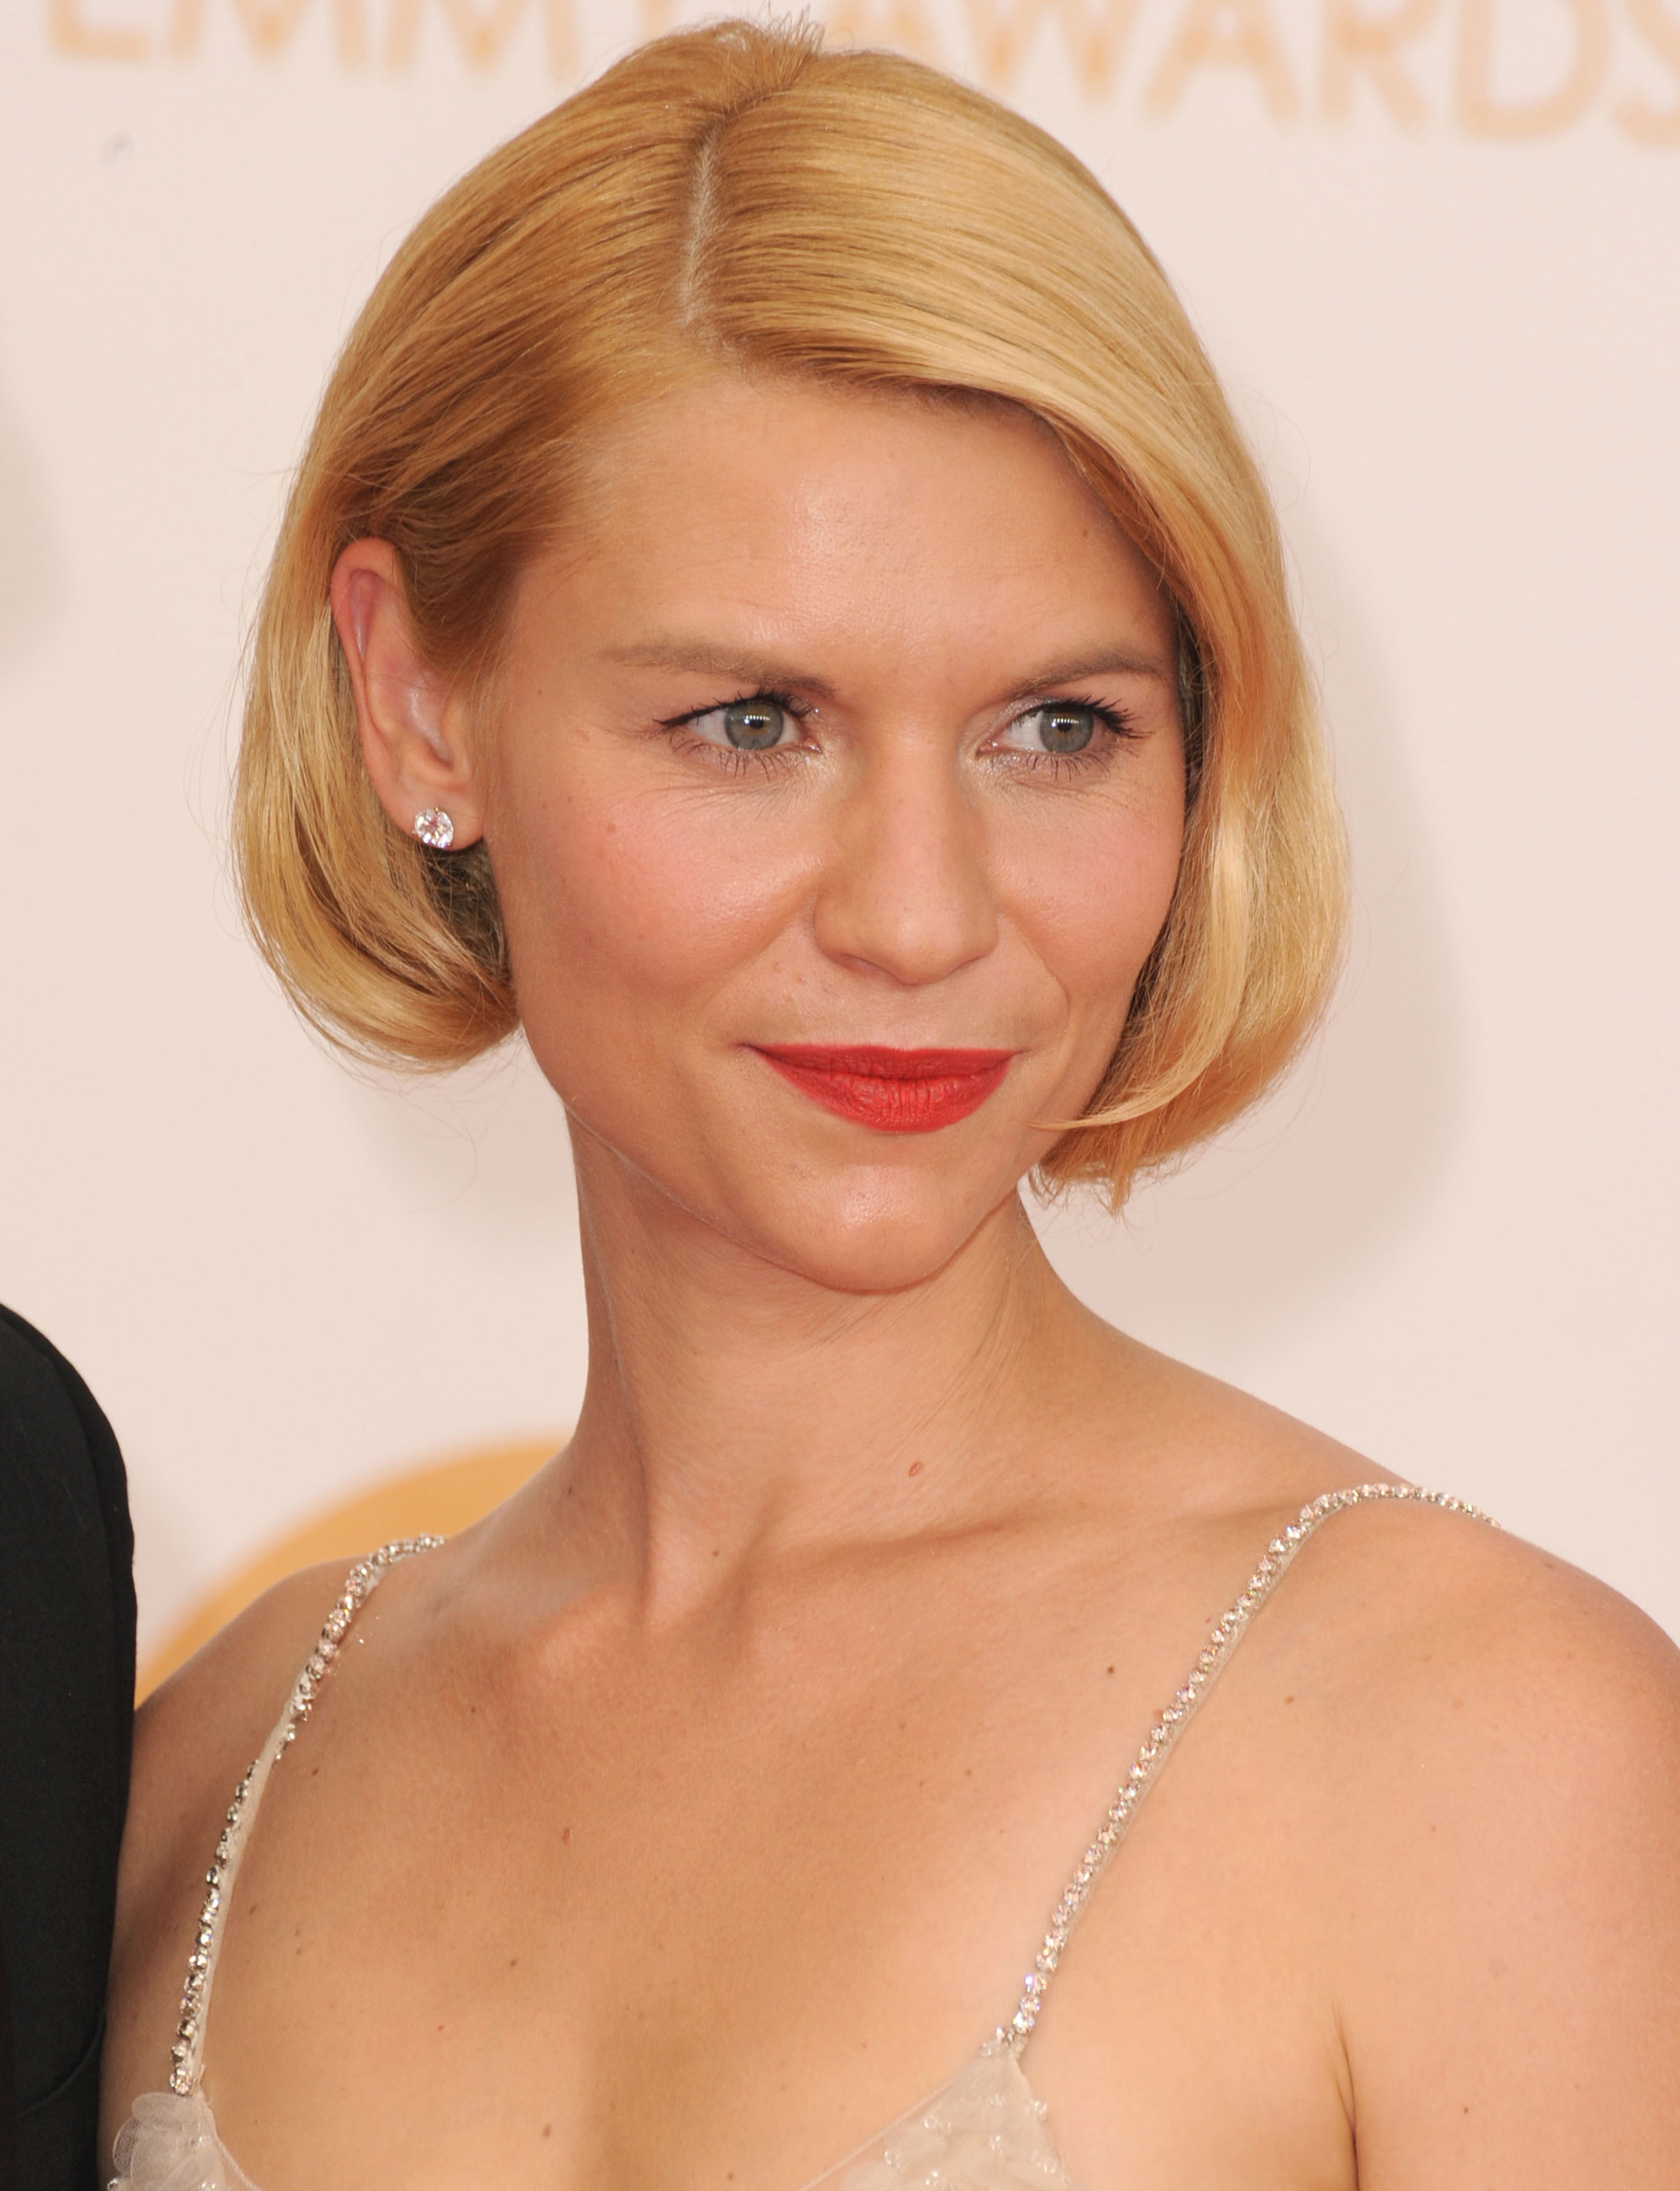 Claire Danes has the combination of charisma, beauty, and smarts that ... Claire Danes